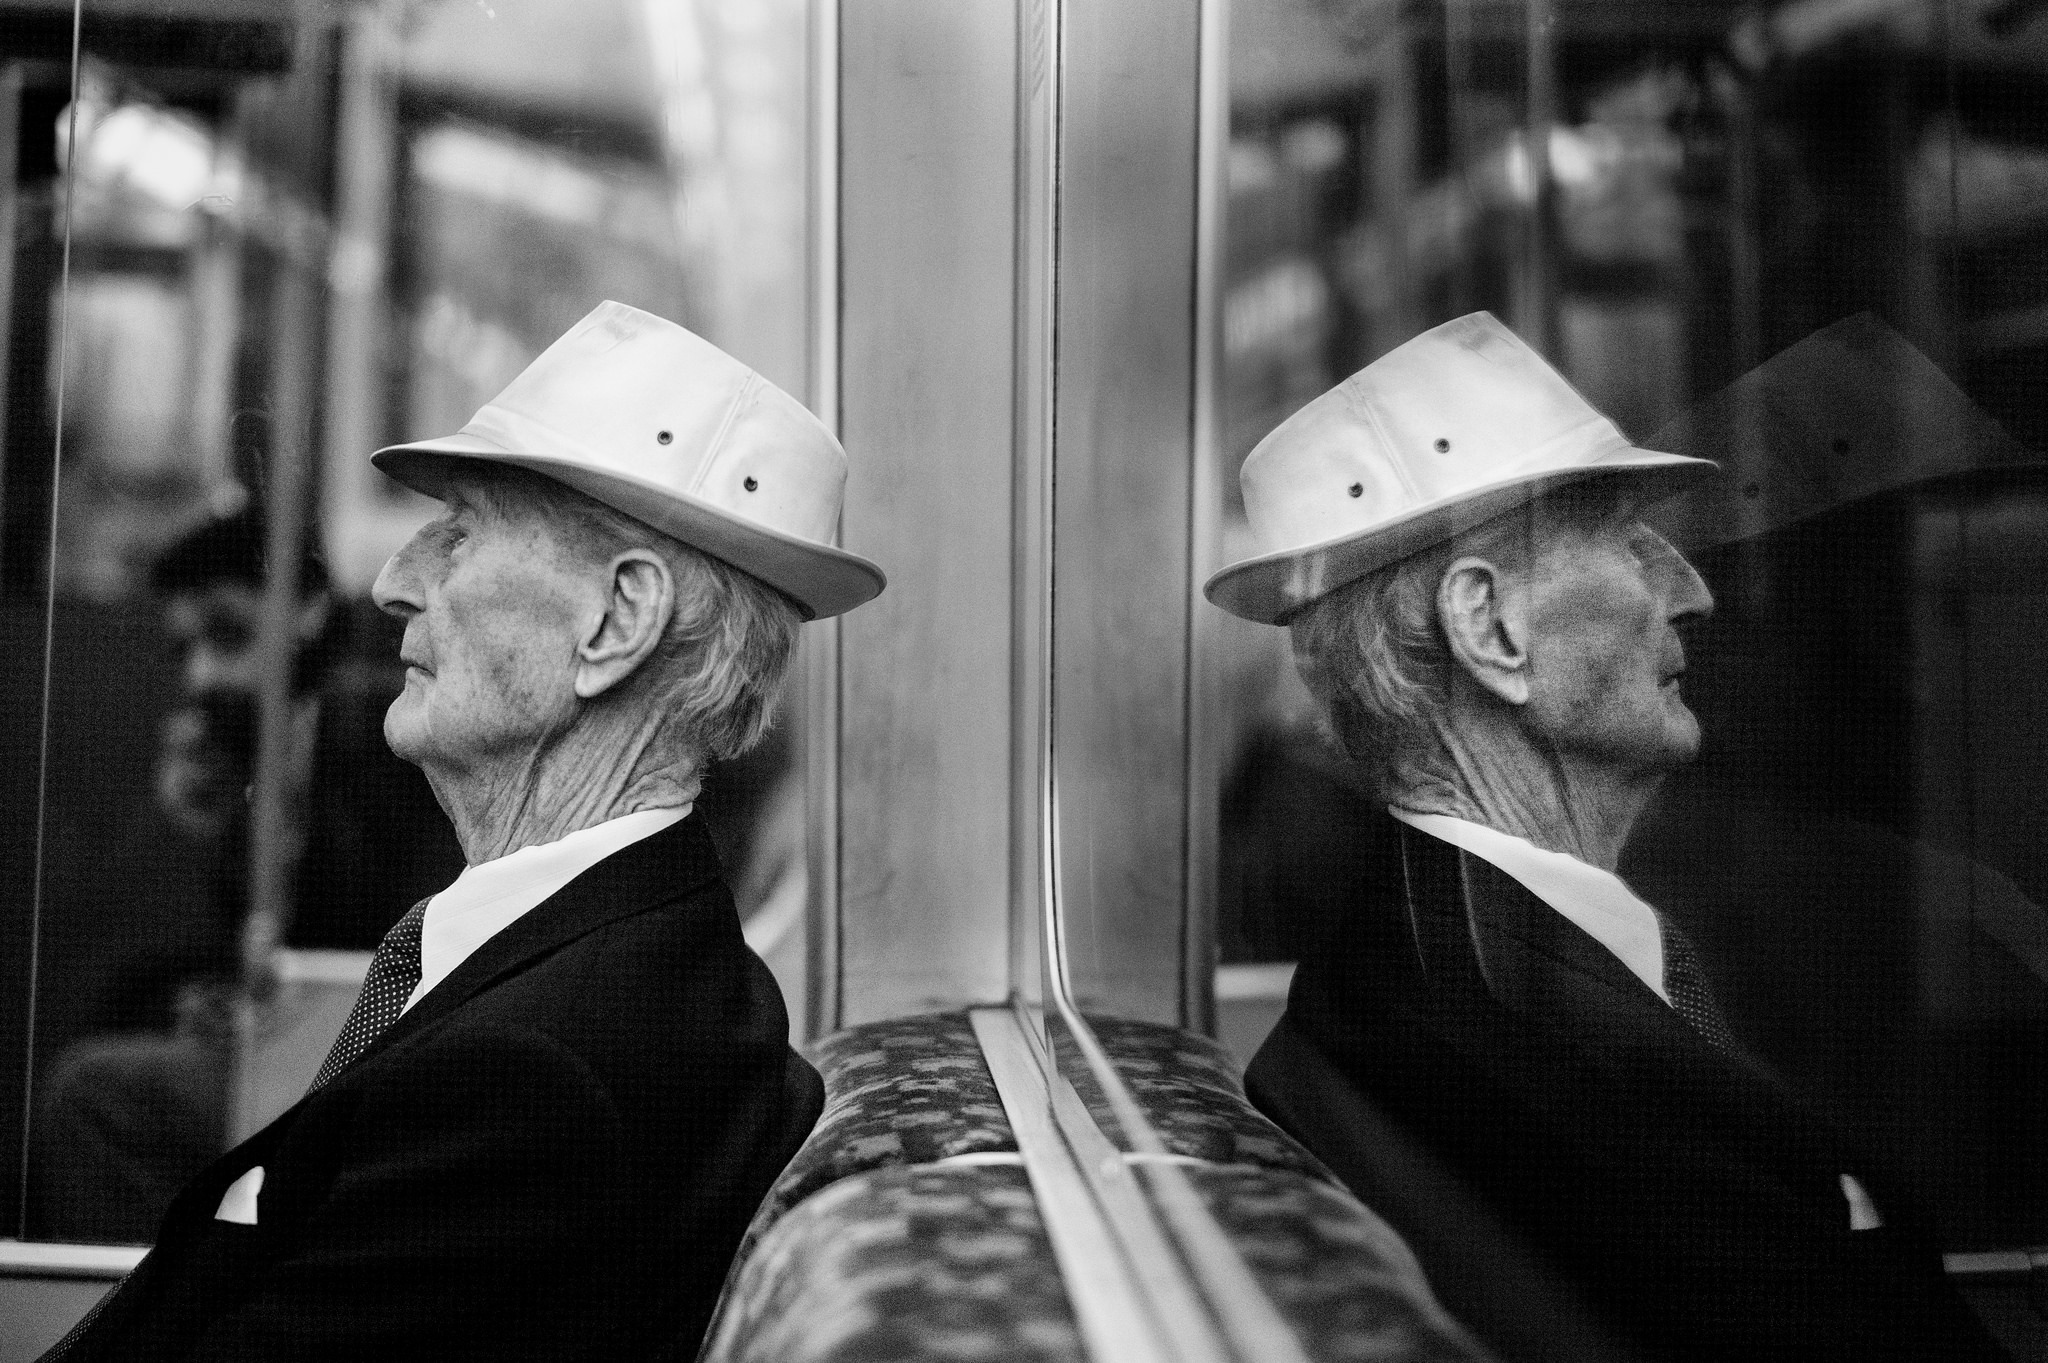 An older gentleman rides the Tube.